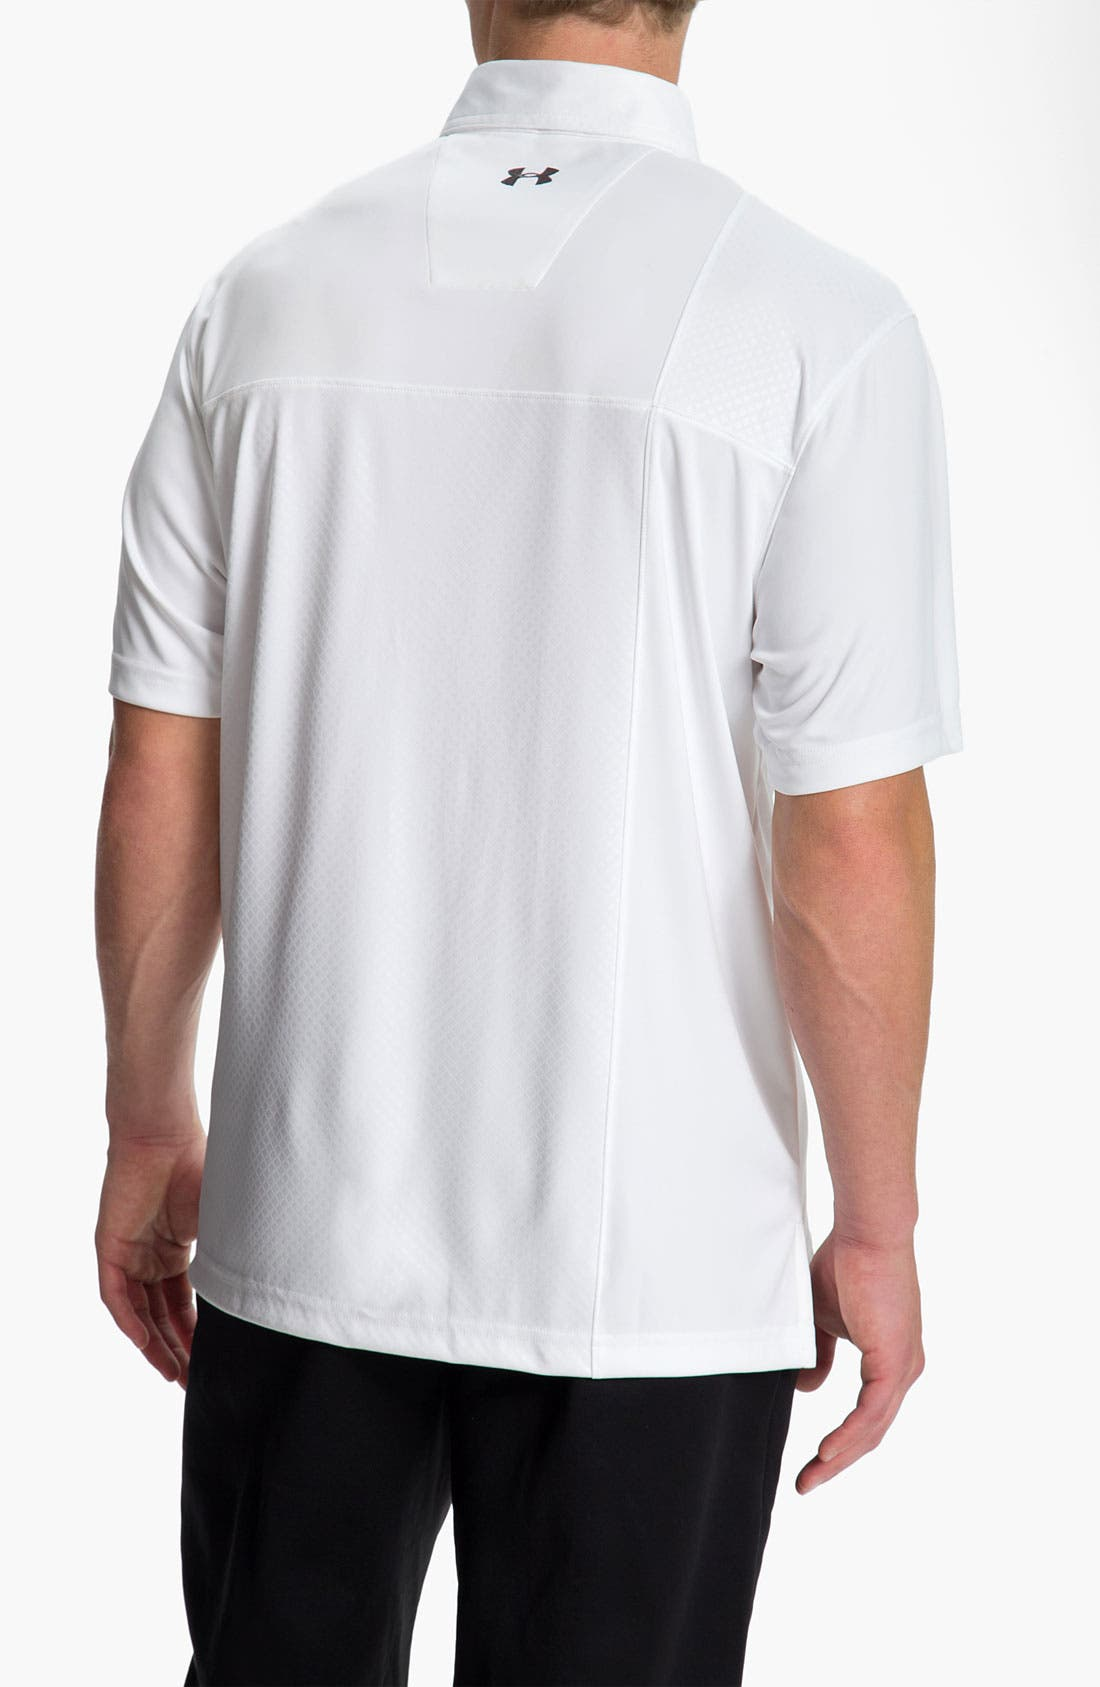 Alternate Image 2  - Under Armour HeatGear® UV Protection Performance Polo